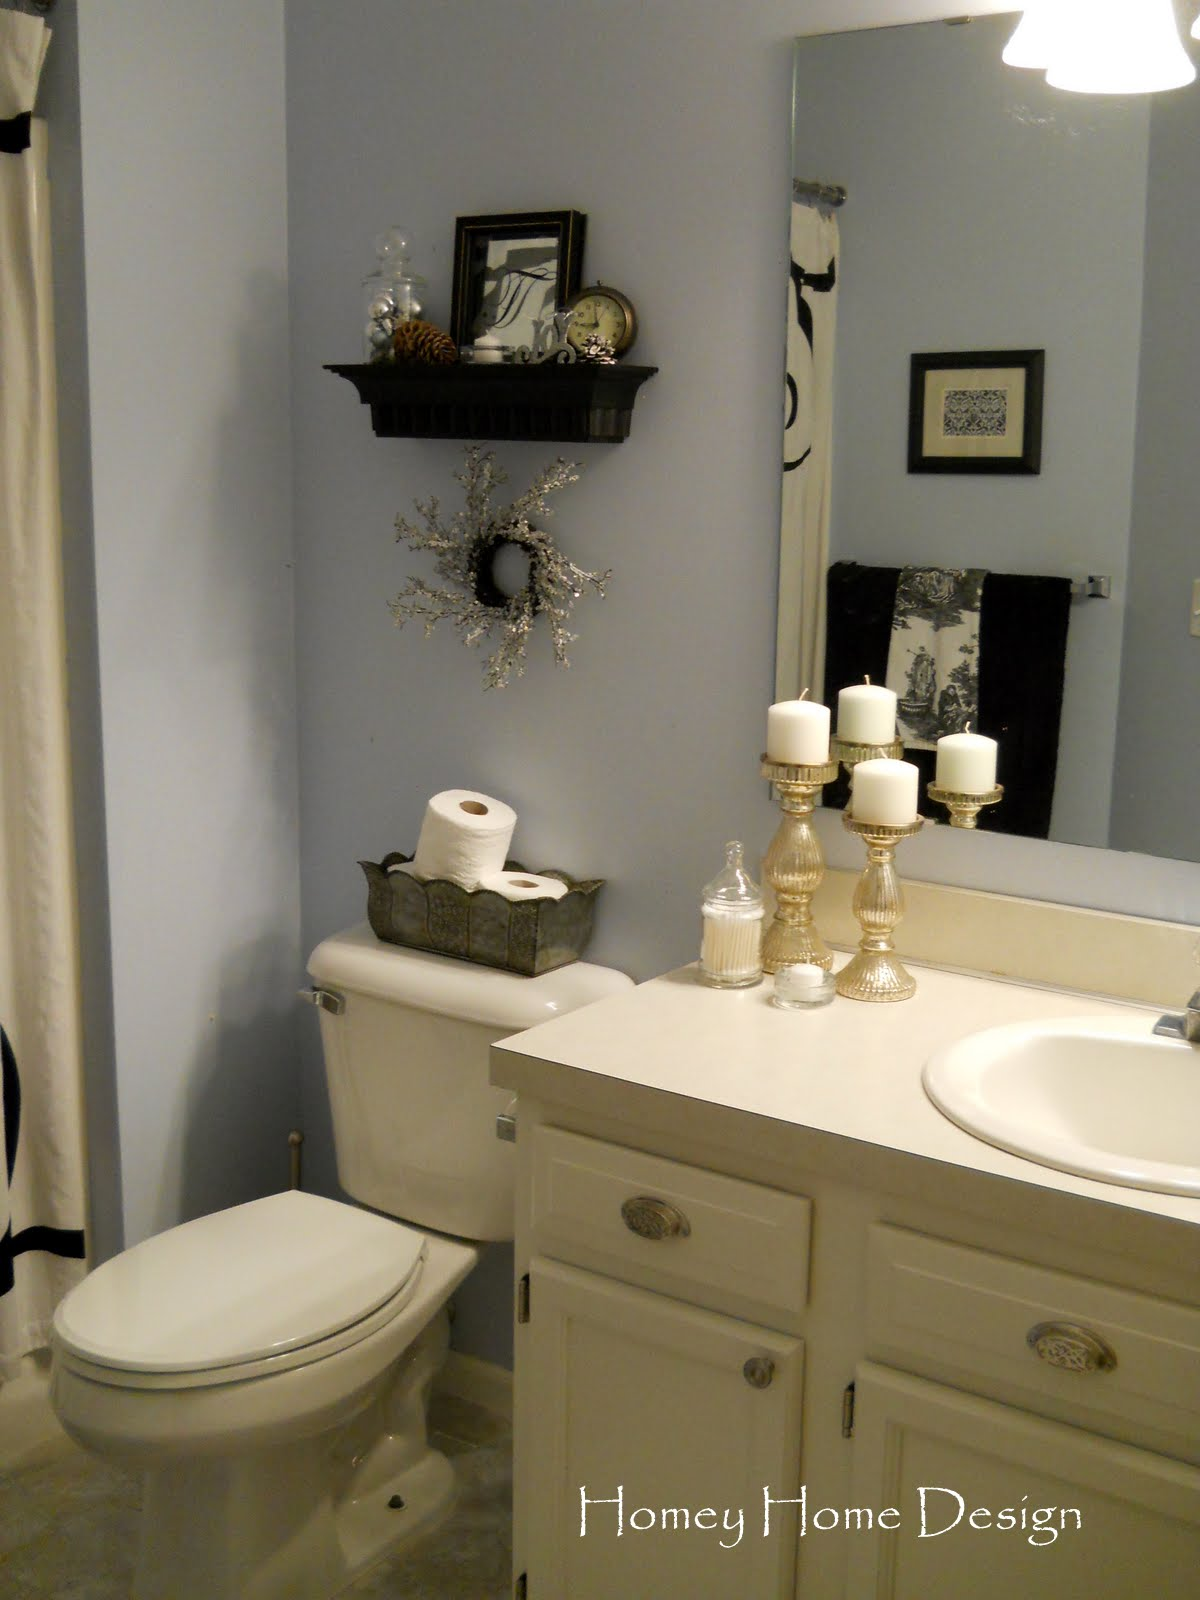 Homey home design christmas in the bathroom for Home decor bathroom pictures